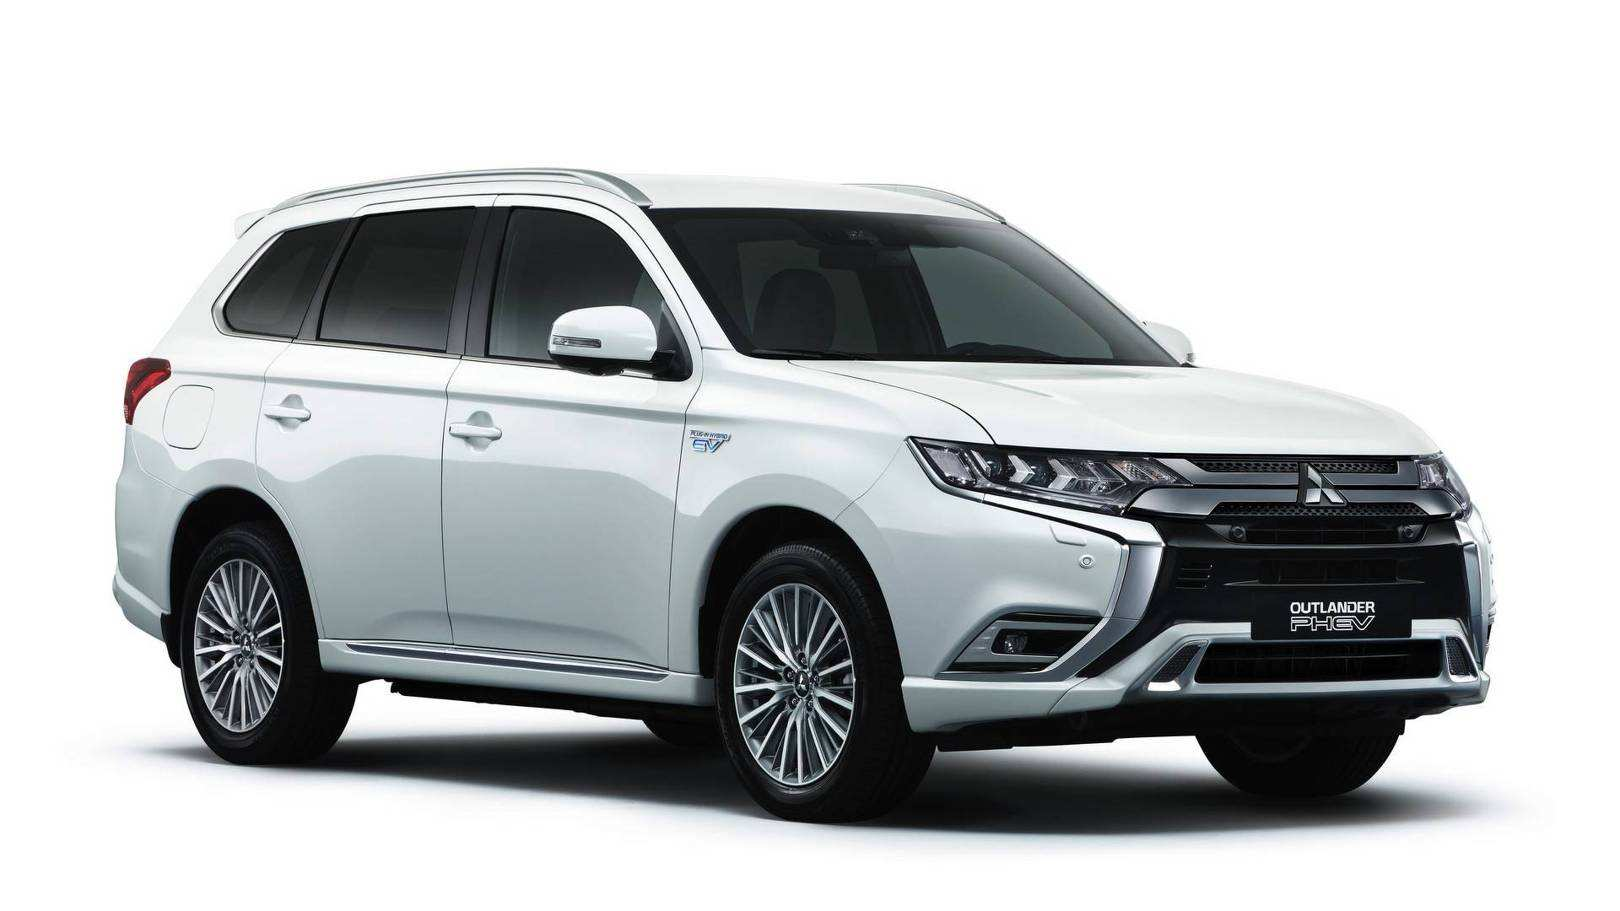 48 Gallery of 2019 Mitsubishi Outlander Phev Review Engine for 2019 Mitsubishi Outlander Phev Review